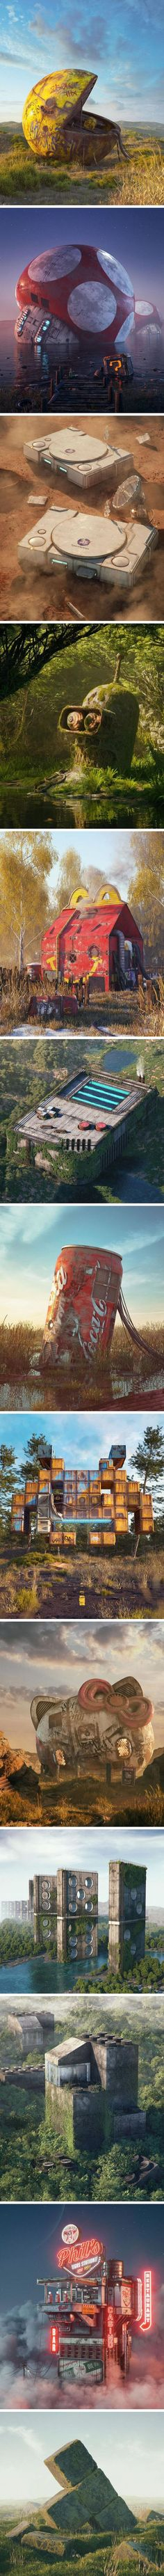 Pop Culture Apocalypse In Amazing Digital Art By Filip Hodas Popkultur-Apokalypse in der erstaunlichen digitalen Kunst durch Filip Hodas Geek Culture, Culture Pop, Arte Pop, Amazing Art, Fantasy Art, Cool Pictures, Concept Art, Cool Art, Art Drawings